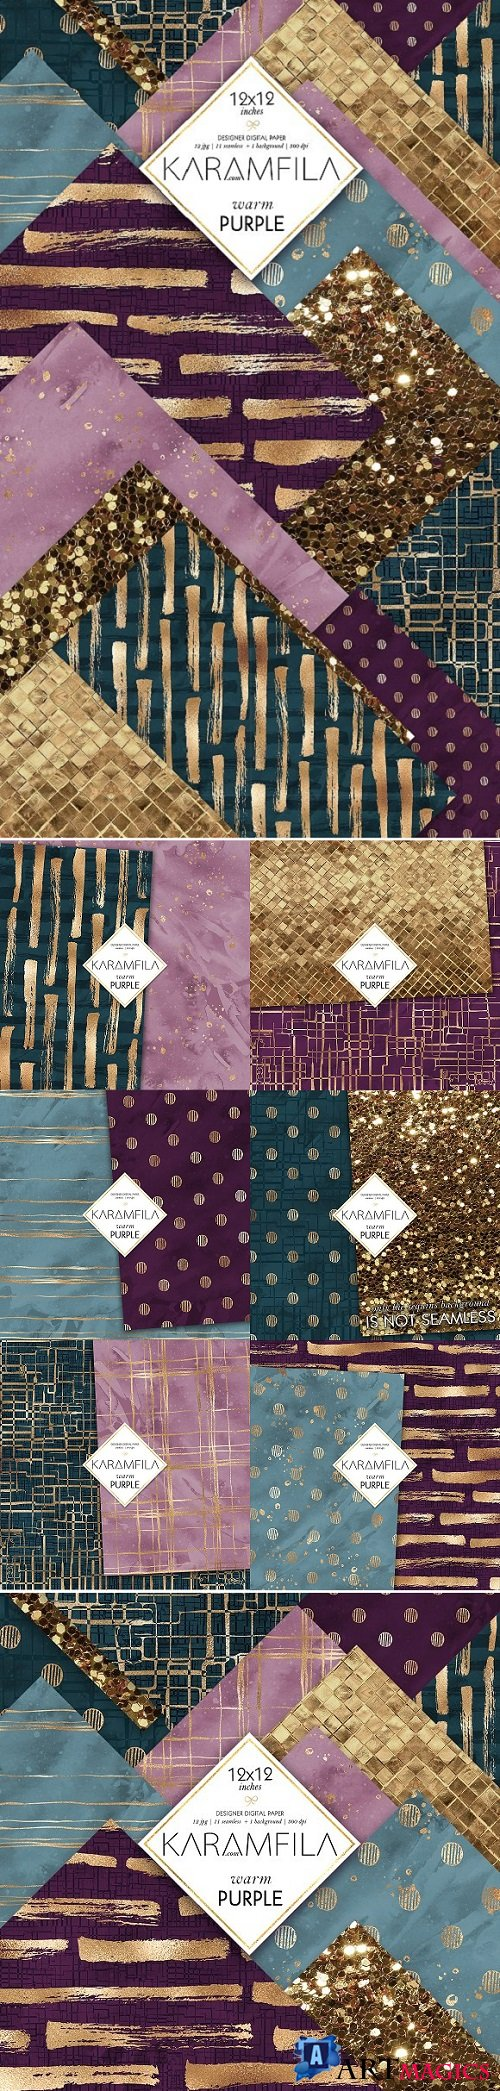 Abstract Violet Gold Patterns - 2140243